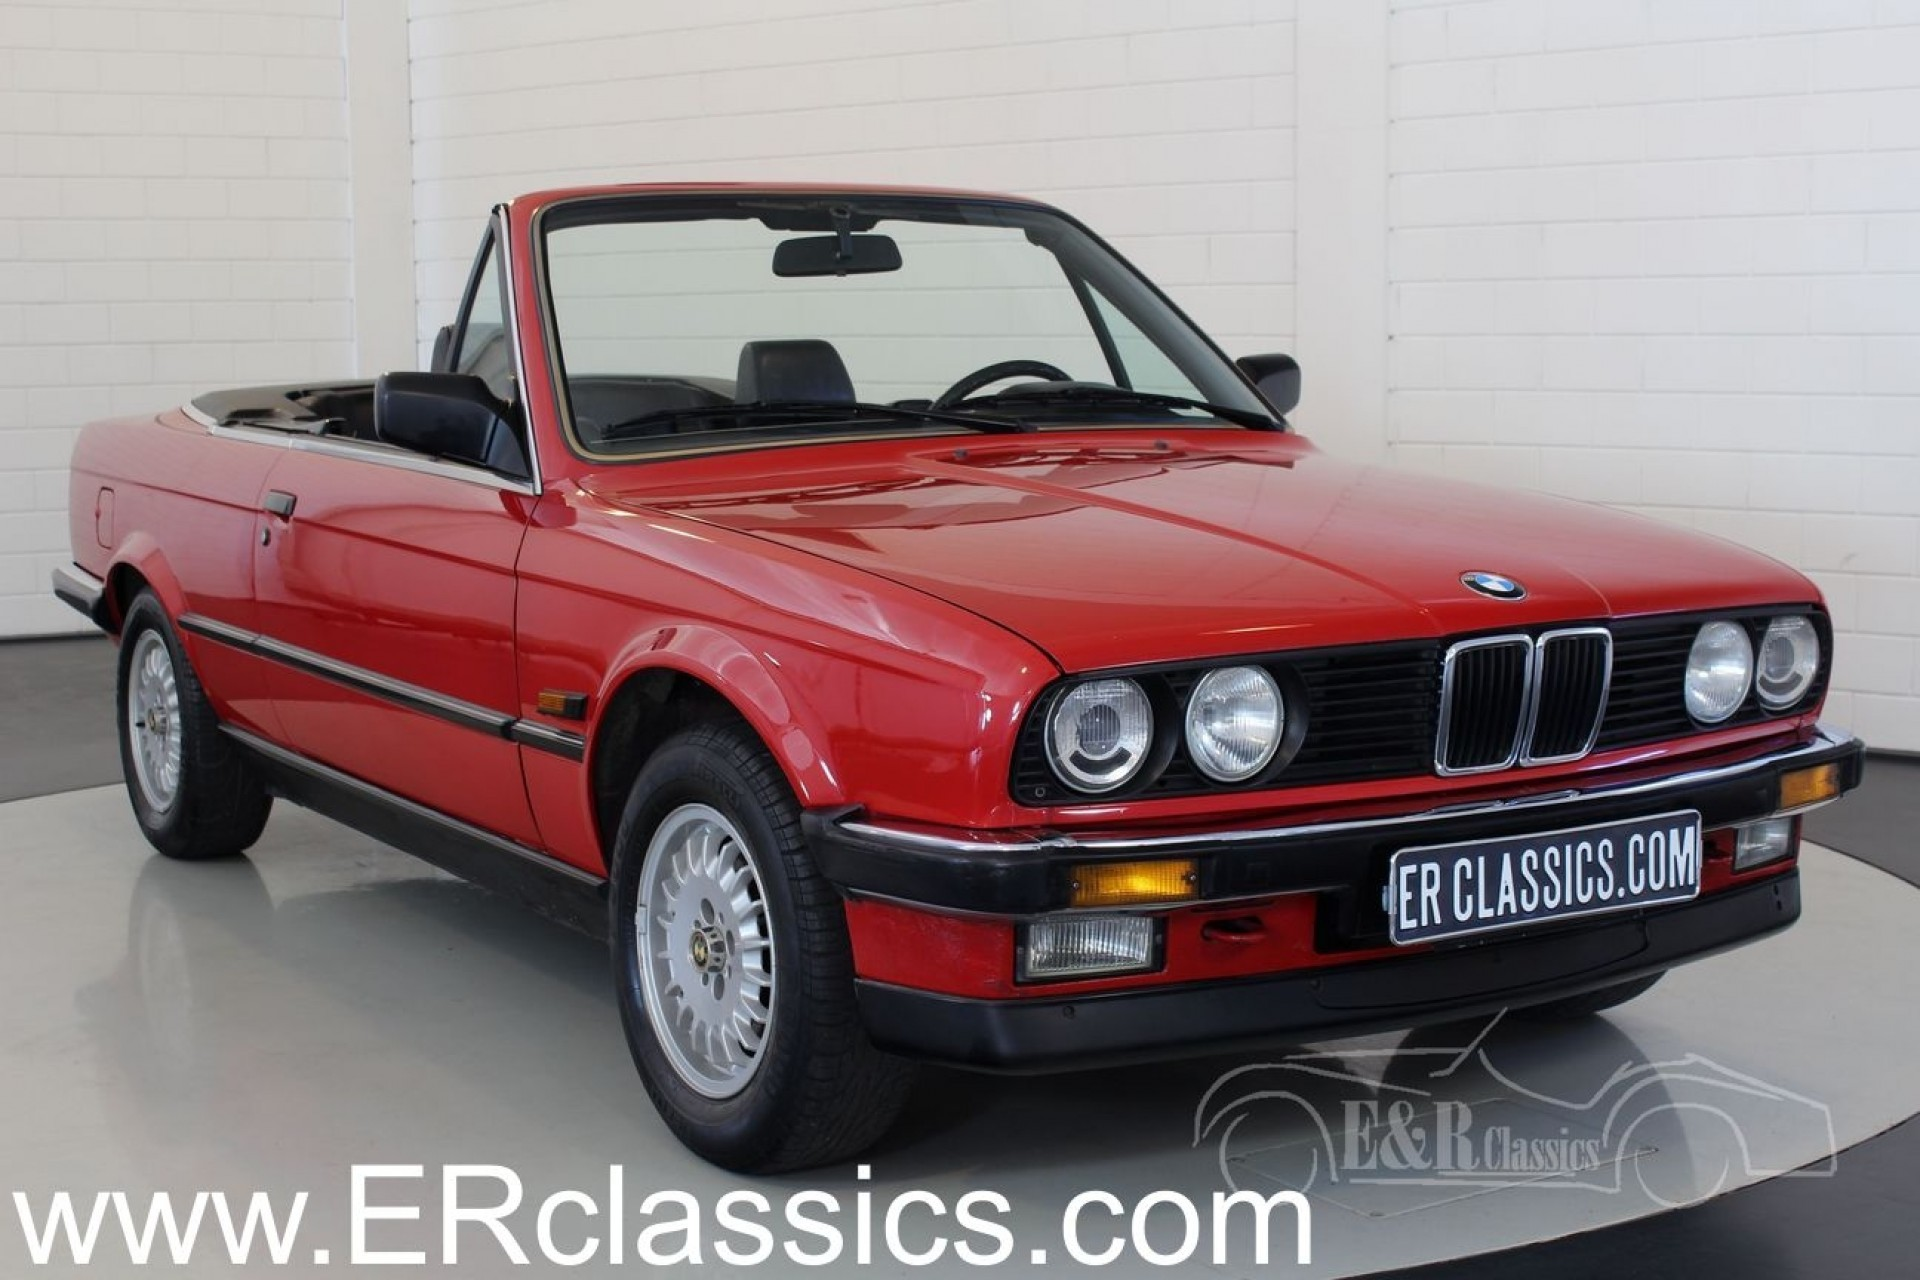 bmw 320i e30 cabriolet 1988 vendre erclassics. Black Bedroom Furniture Sets. Home Design Ideas